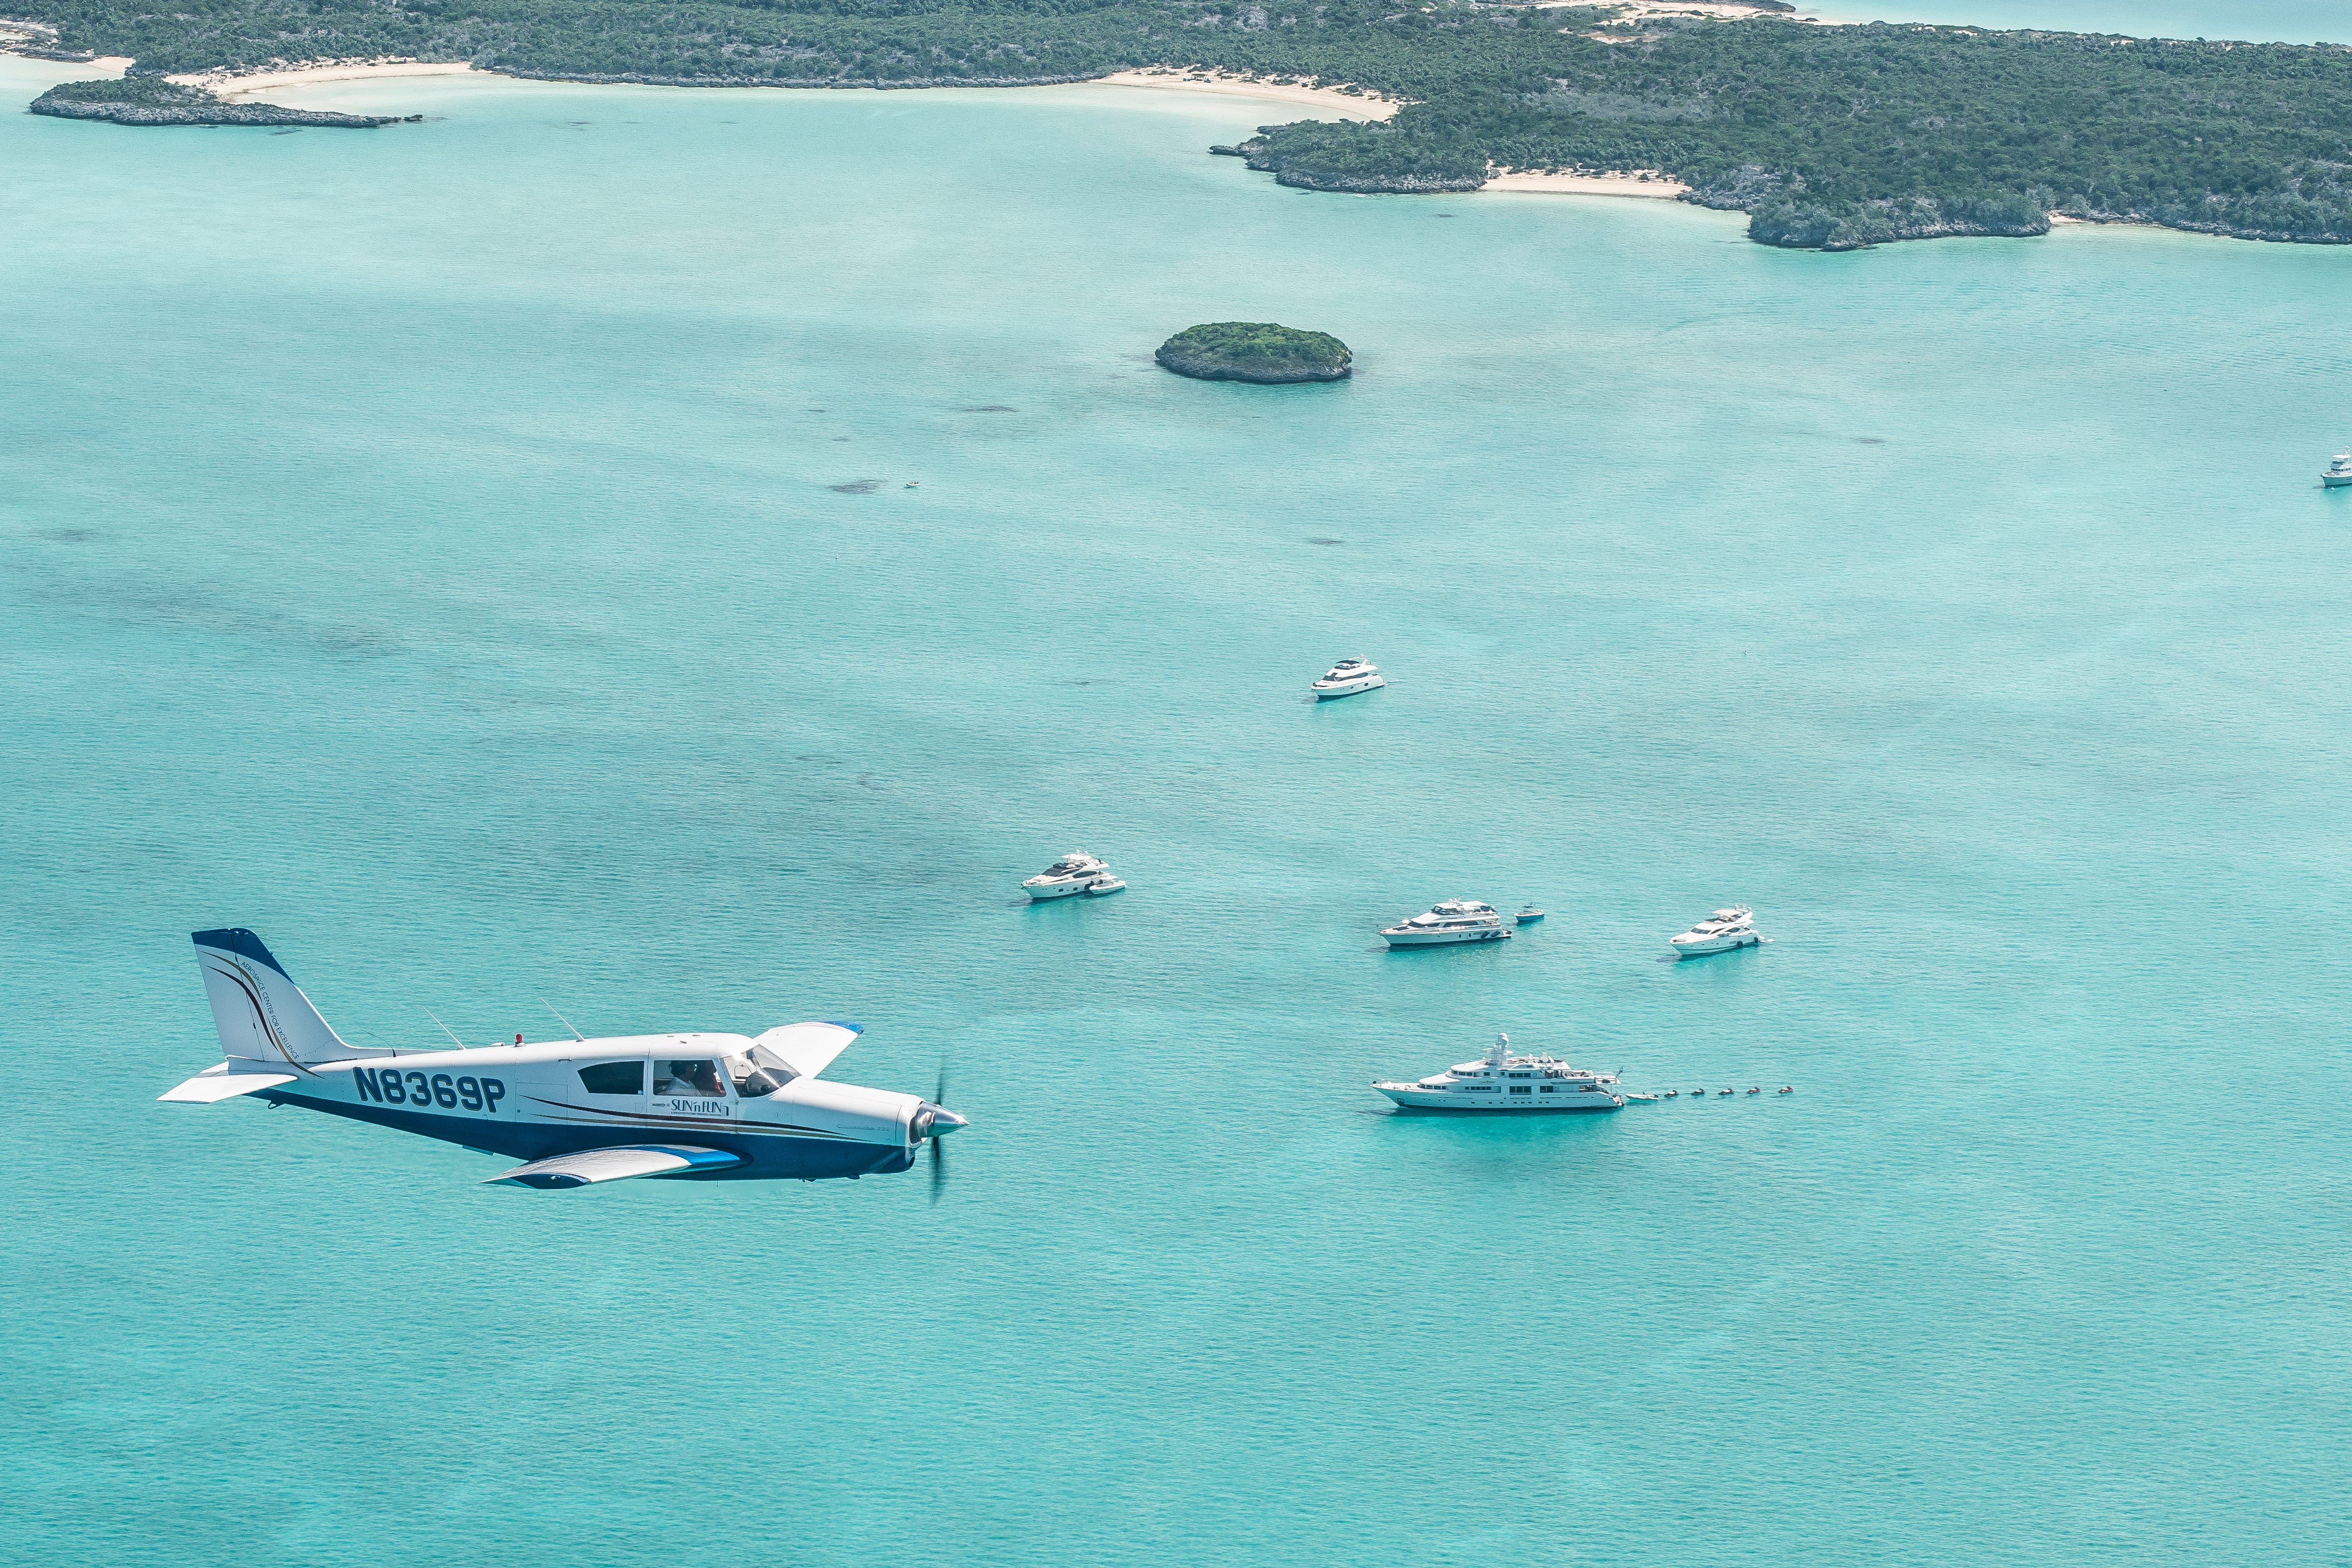 SUN 'n FUN makes it simple to fly to The Bahamas